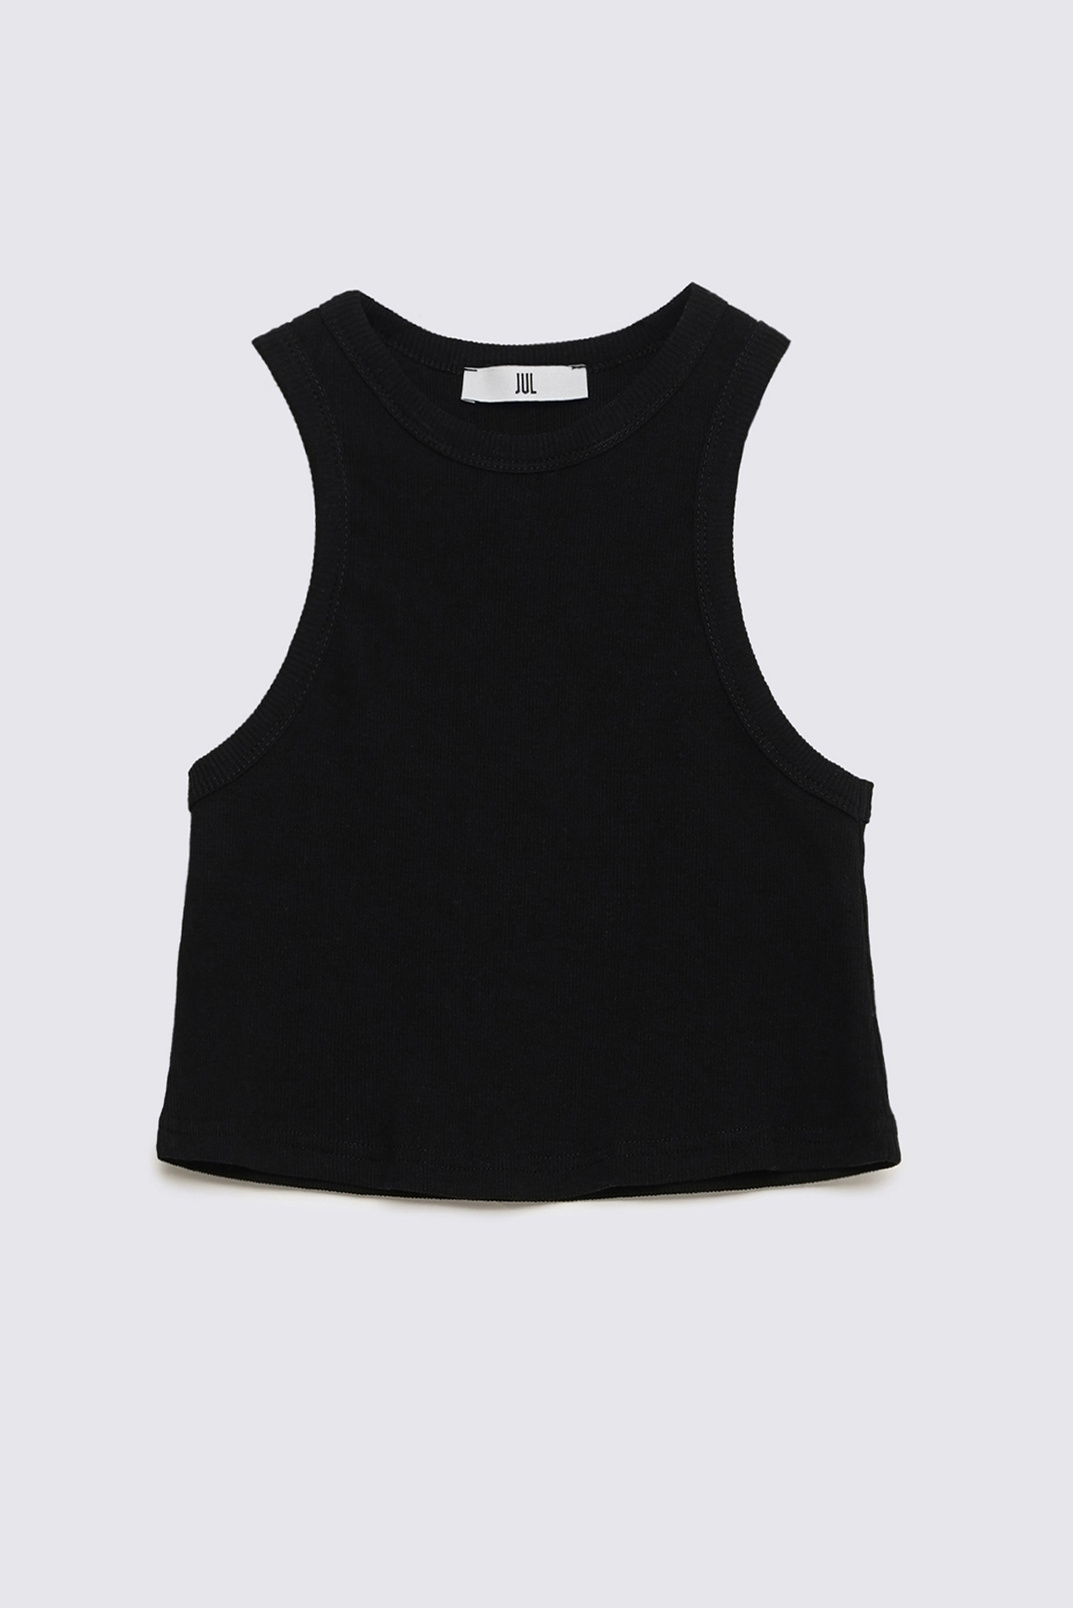 Basic shirt, Black, S